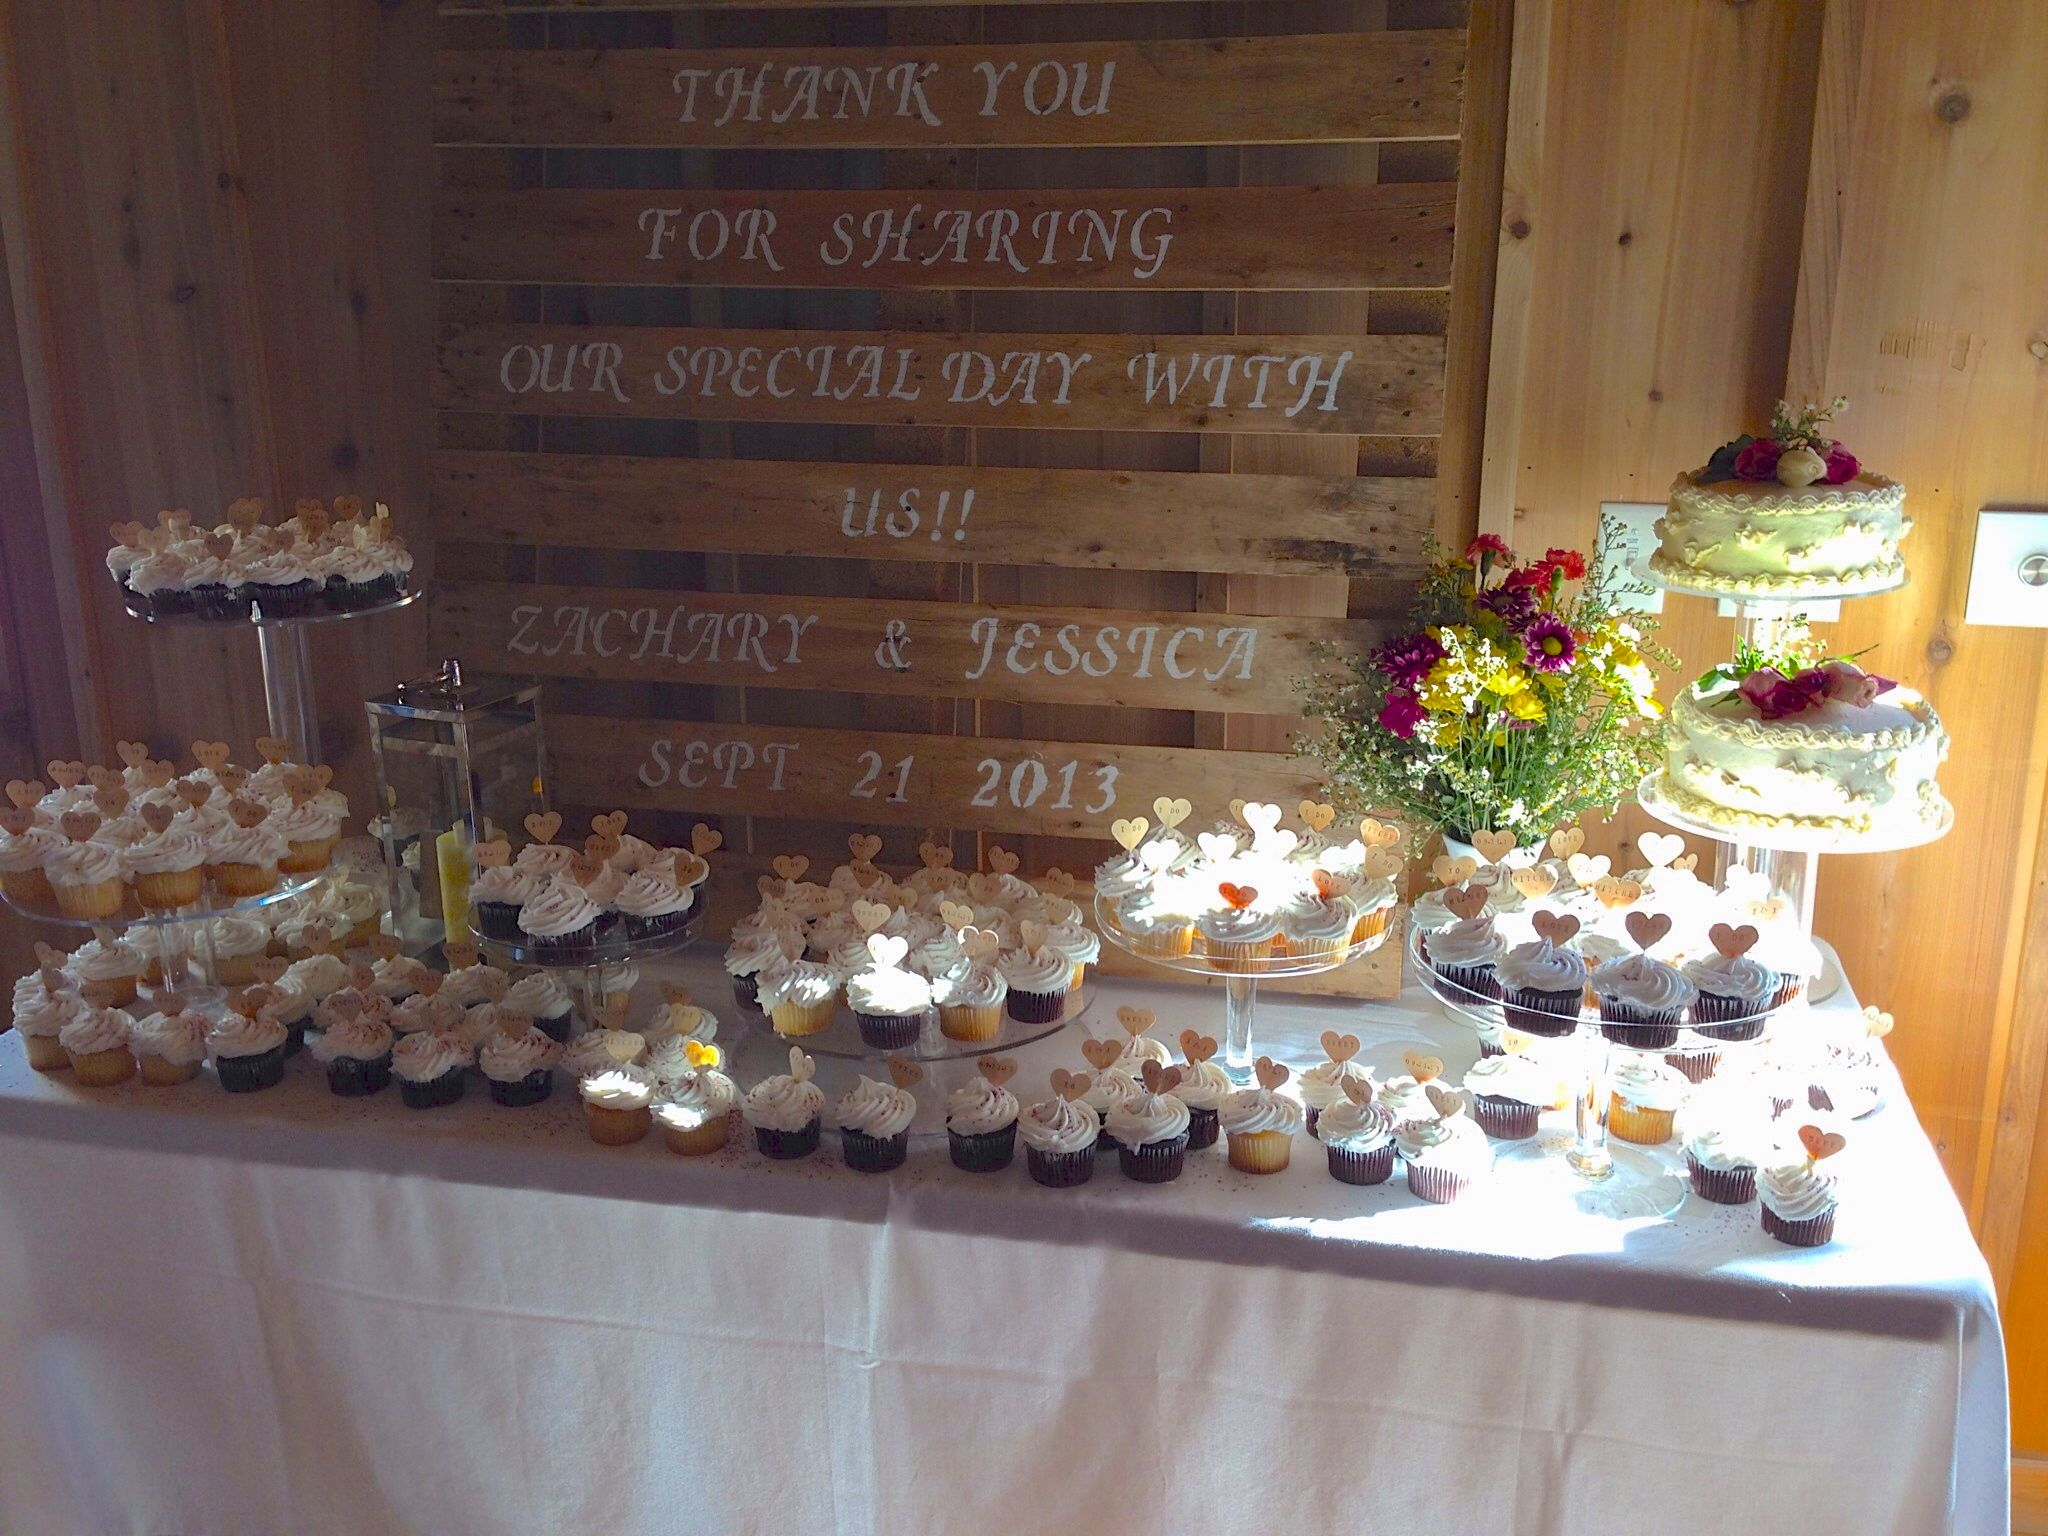 Crate behind cake stand rustic cakes wedding cupcakes ideas